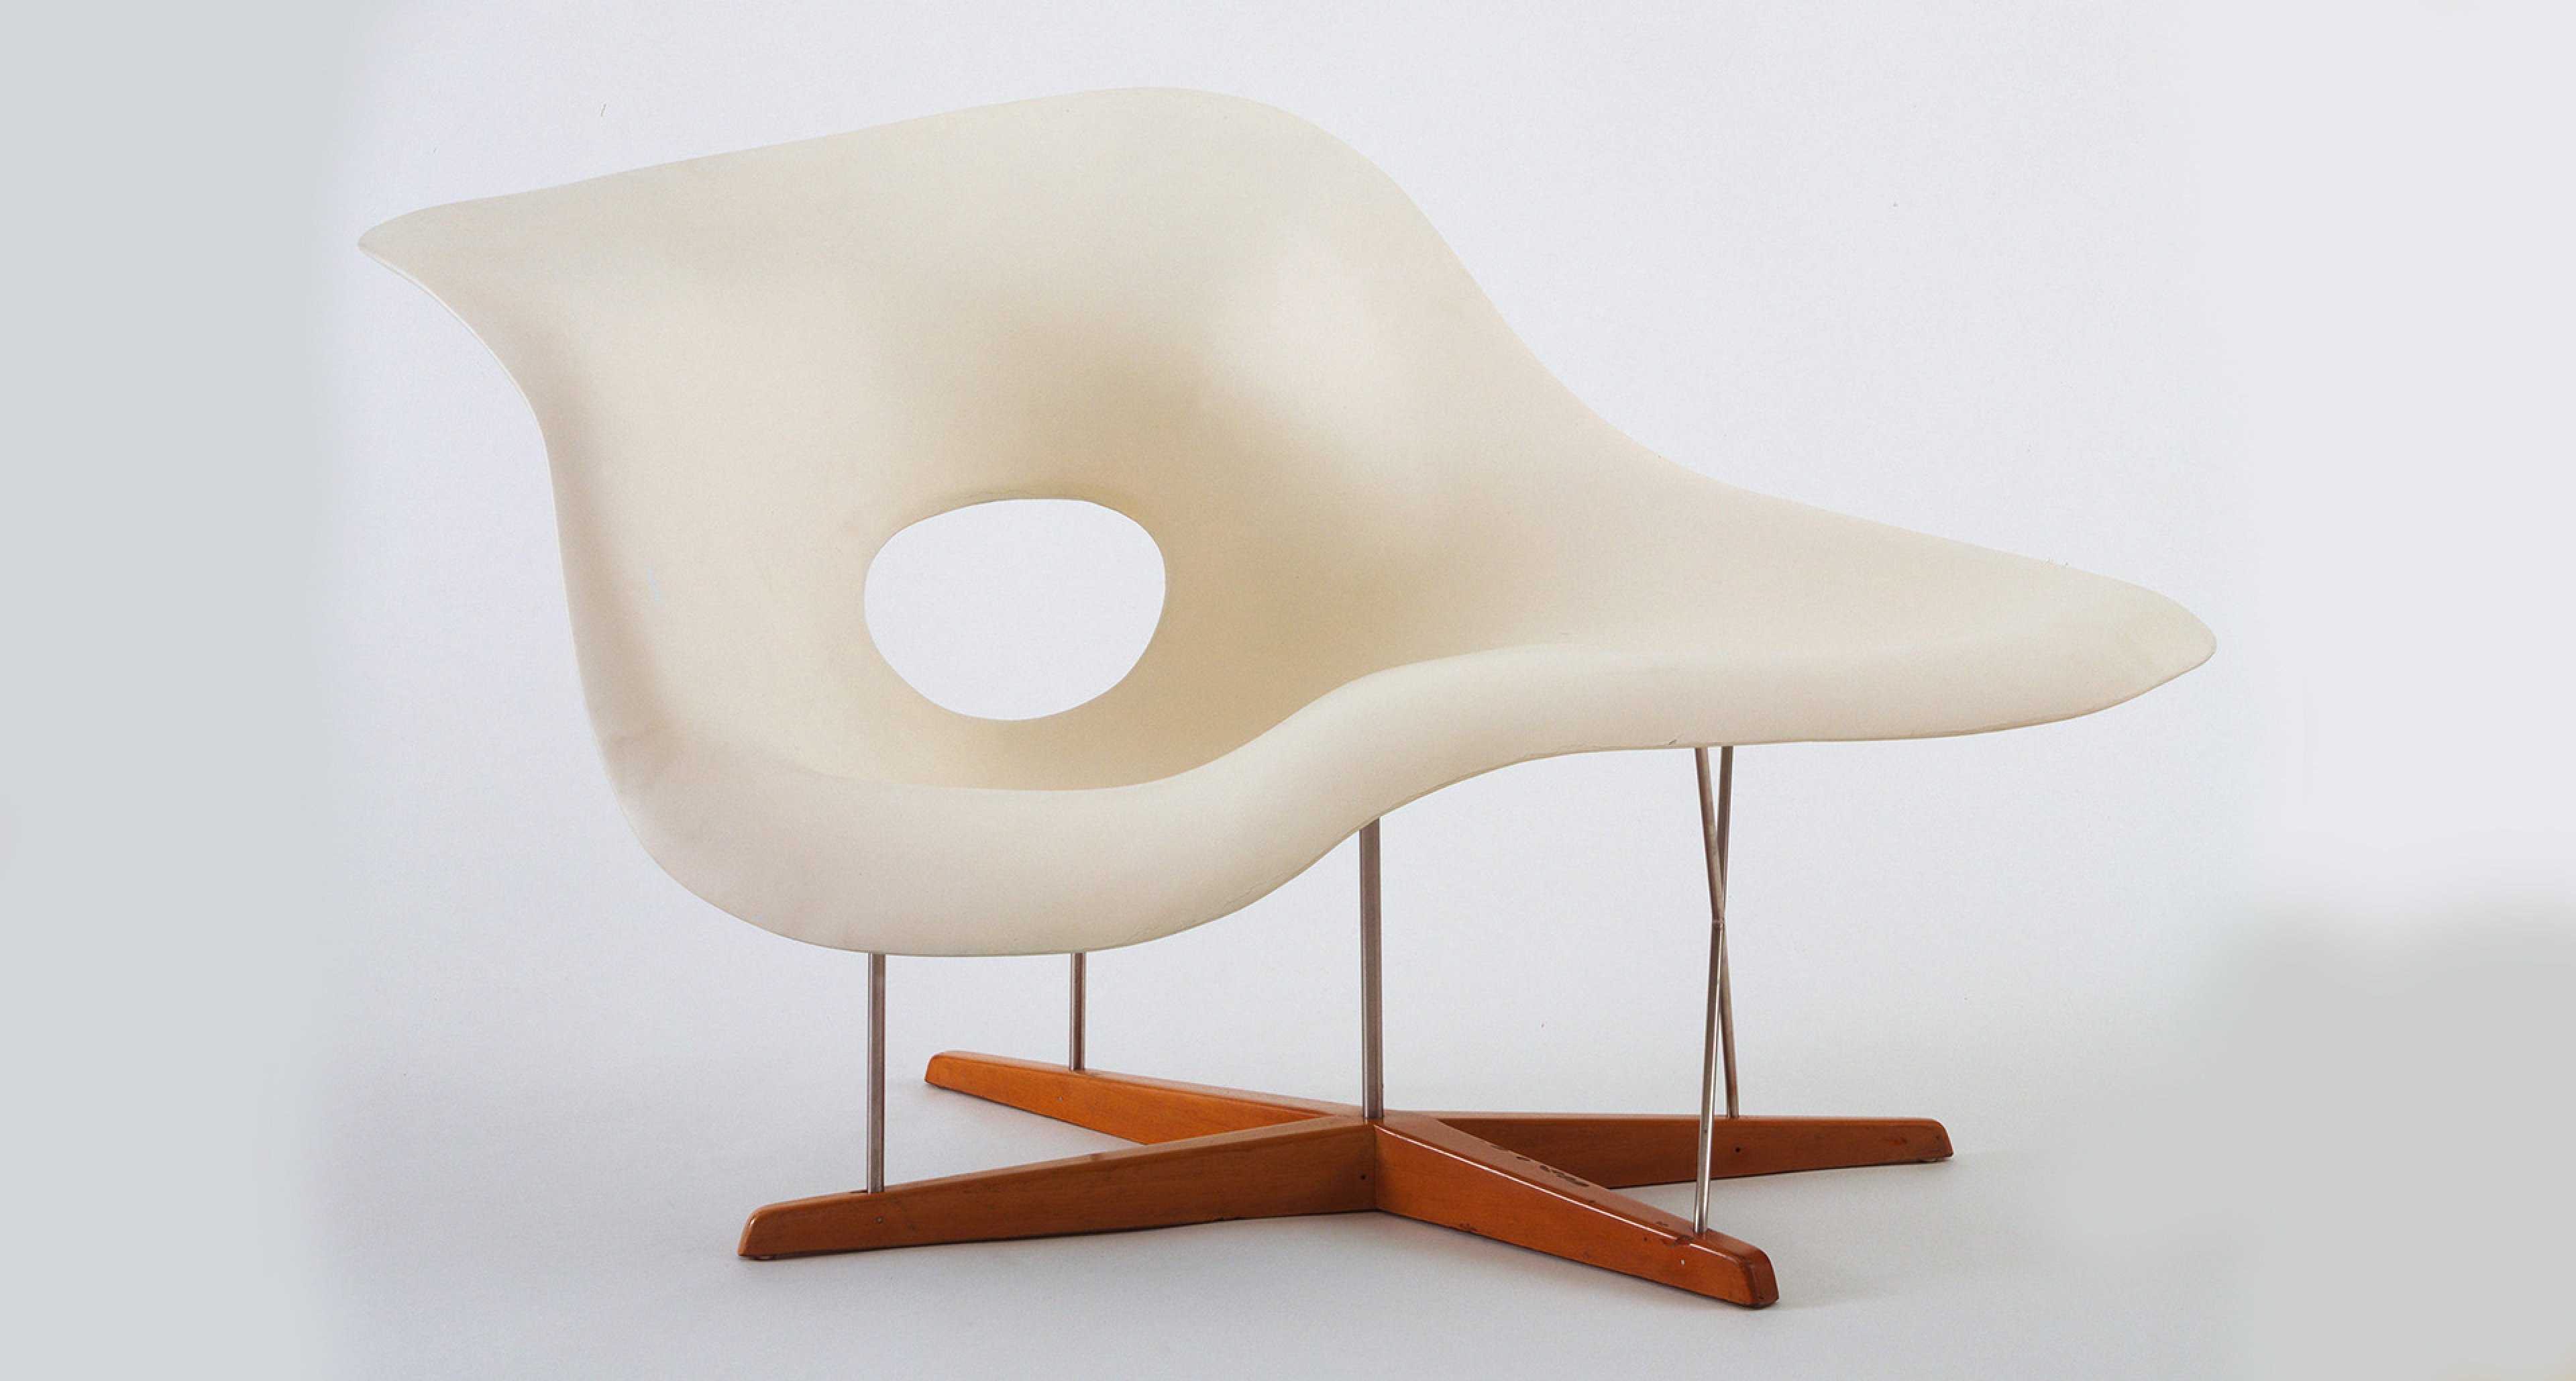 Charles Eames (American, 1907–1978), Ray Eames (American, 1912–1988). Prototype for Chaise Longue (La Chaise). 1948. Hard rubber foam, plastic, wood, and metal, 32 1/2 x 59 x 34 1/4″ (82.5 x 149.8 x 87 cm). The Museum of Modern Art, New York. Gift of the